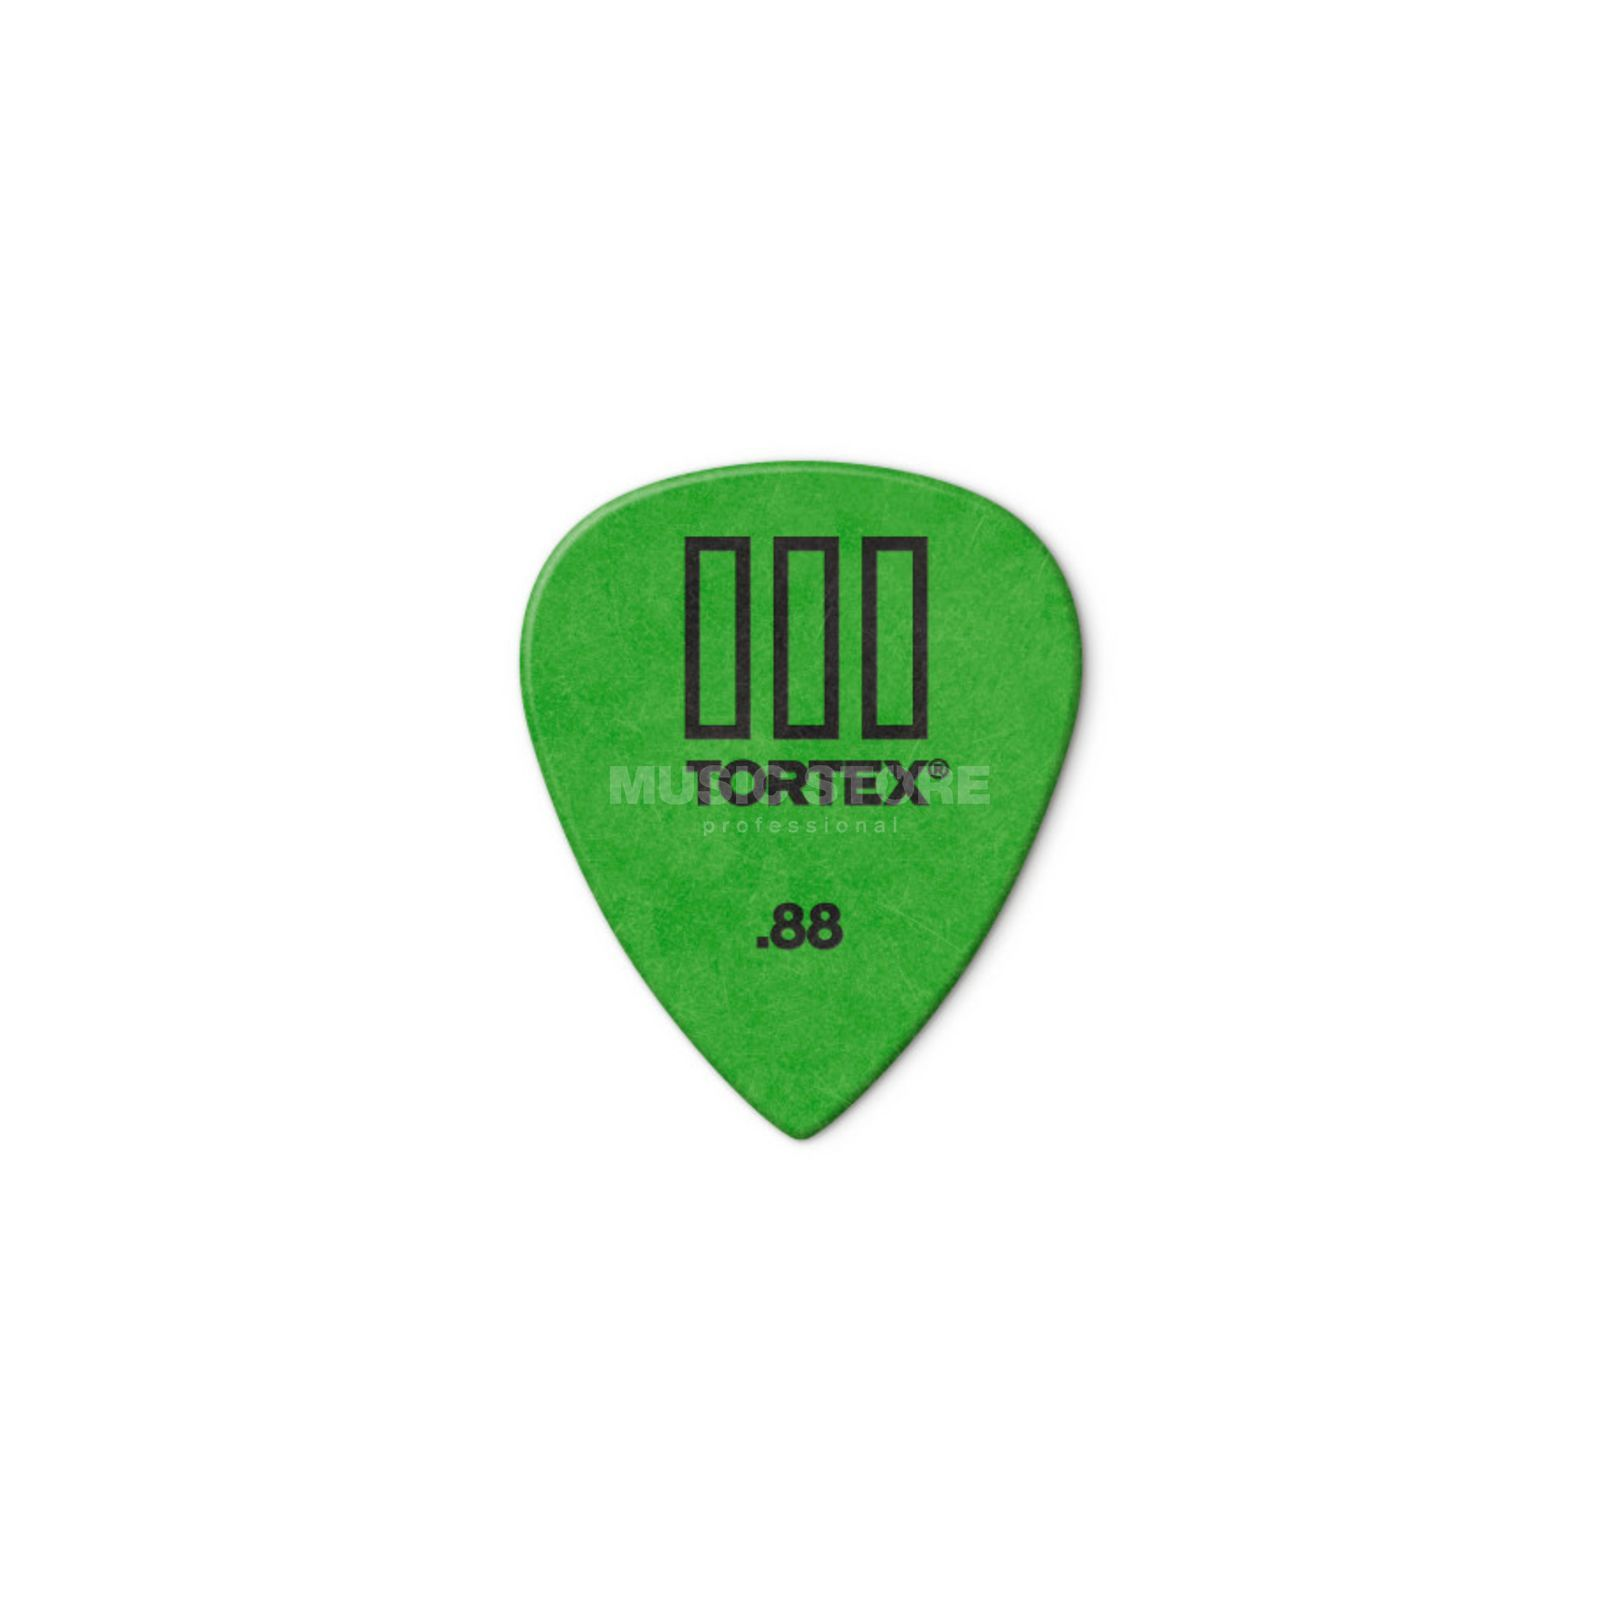 Dunlop Tortex III 462 Picks 0,88 12-Pack, green Produktbillede